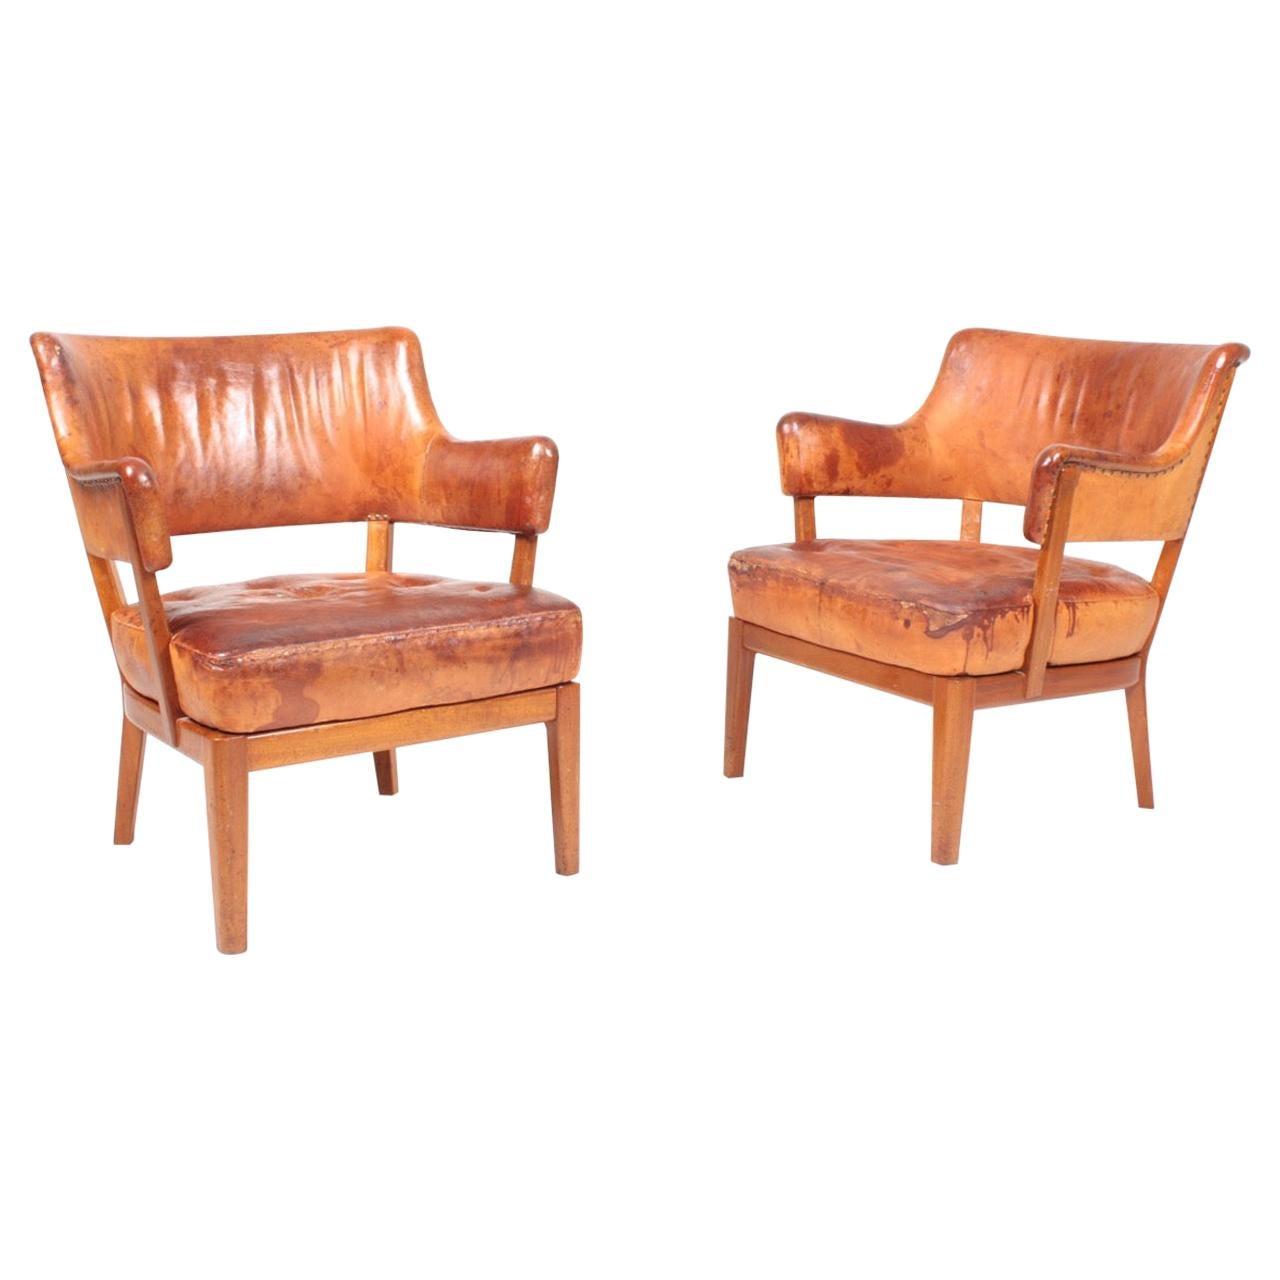 Pair of Midcentury Lounge Chairs in Patinated Leather, 1940s